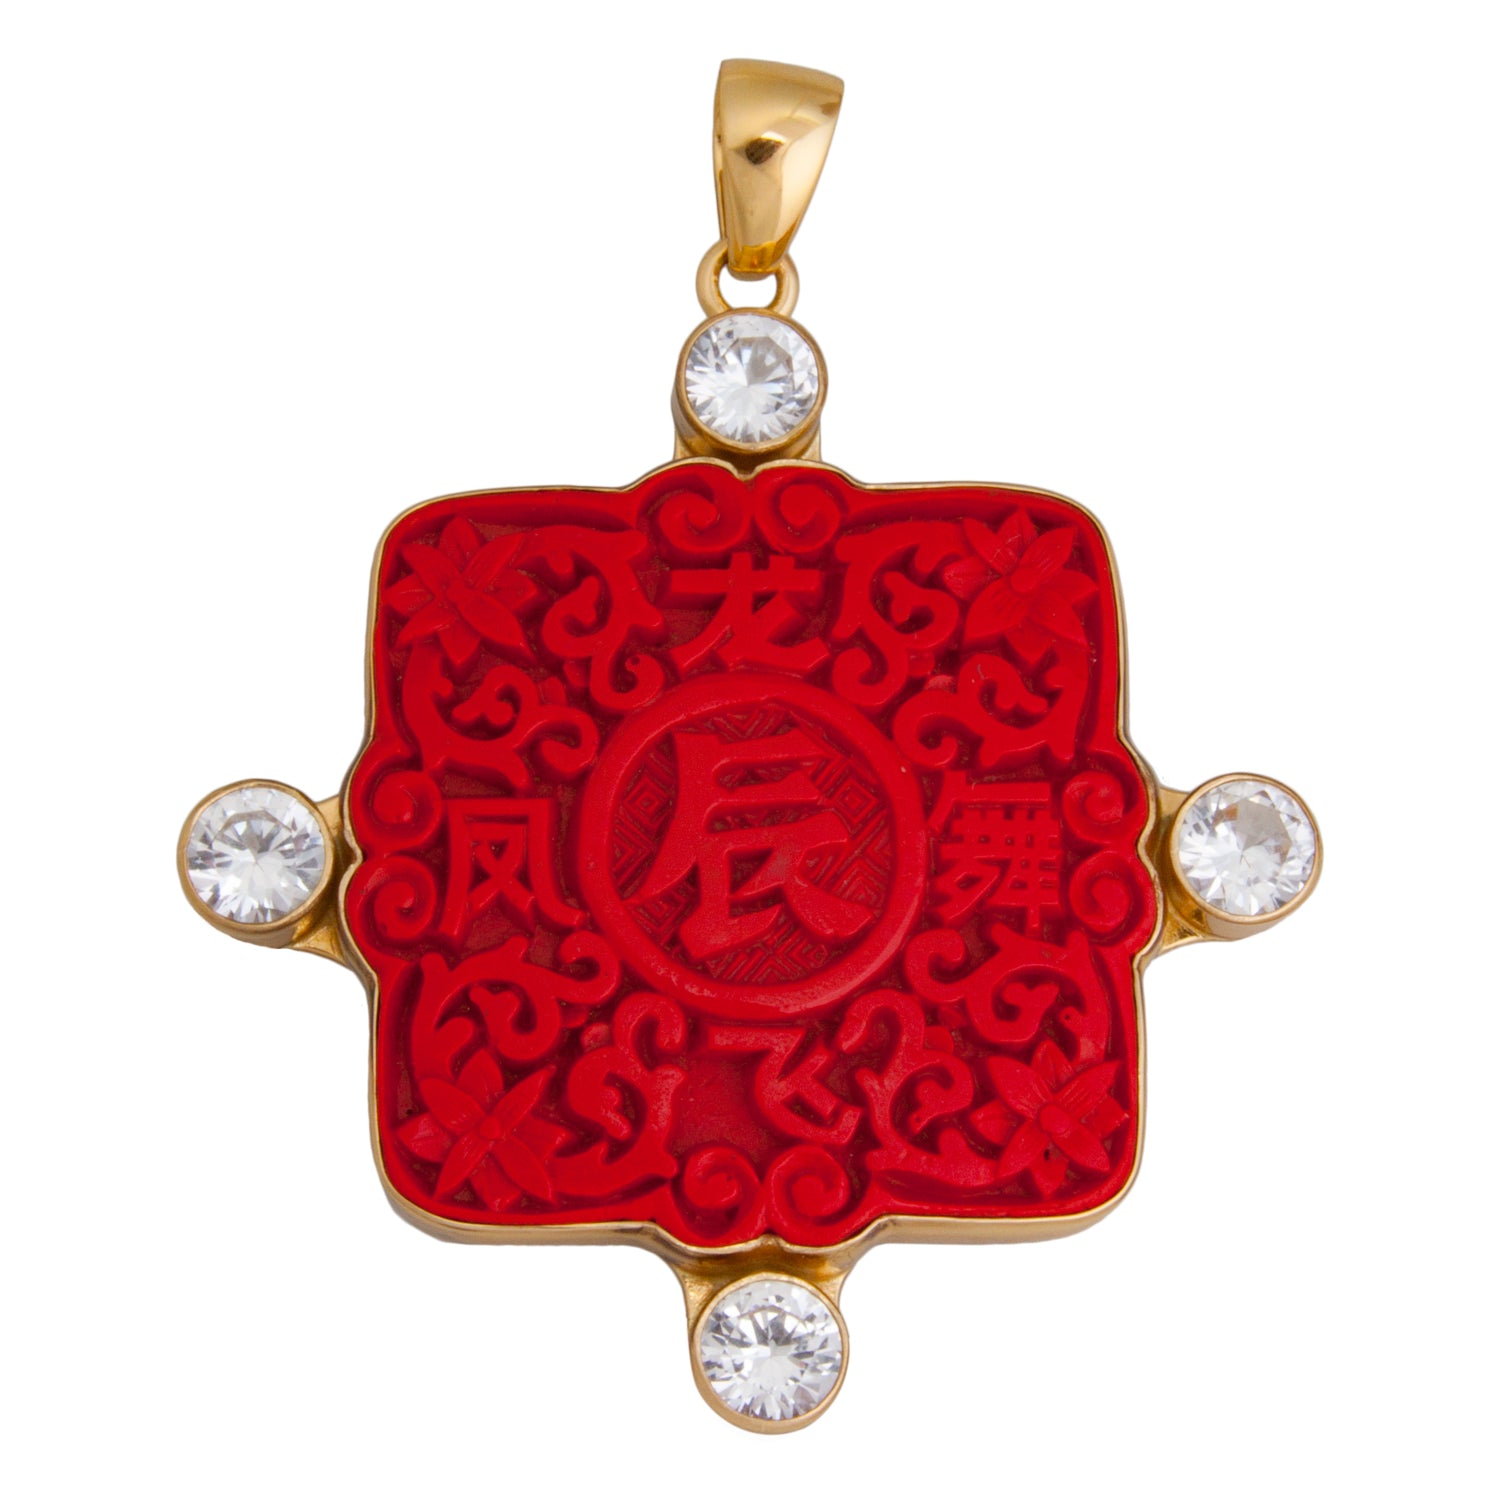 Alchemia Cinnabar and Quartz Pendant | Charles Albert Jewelry